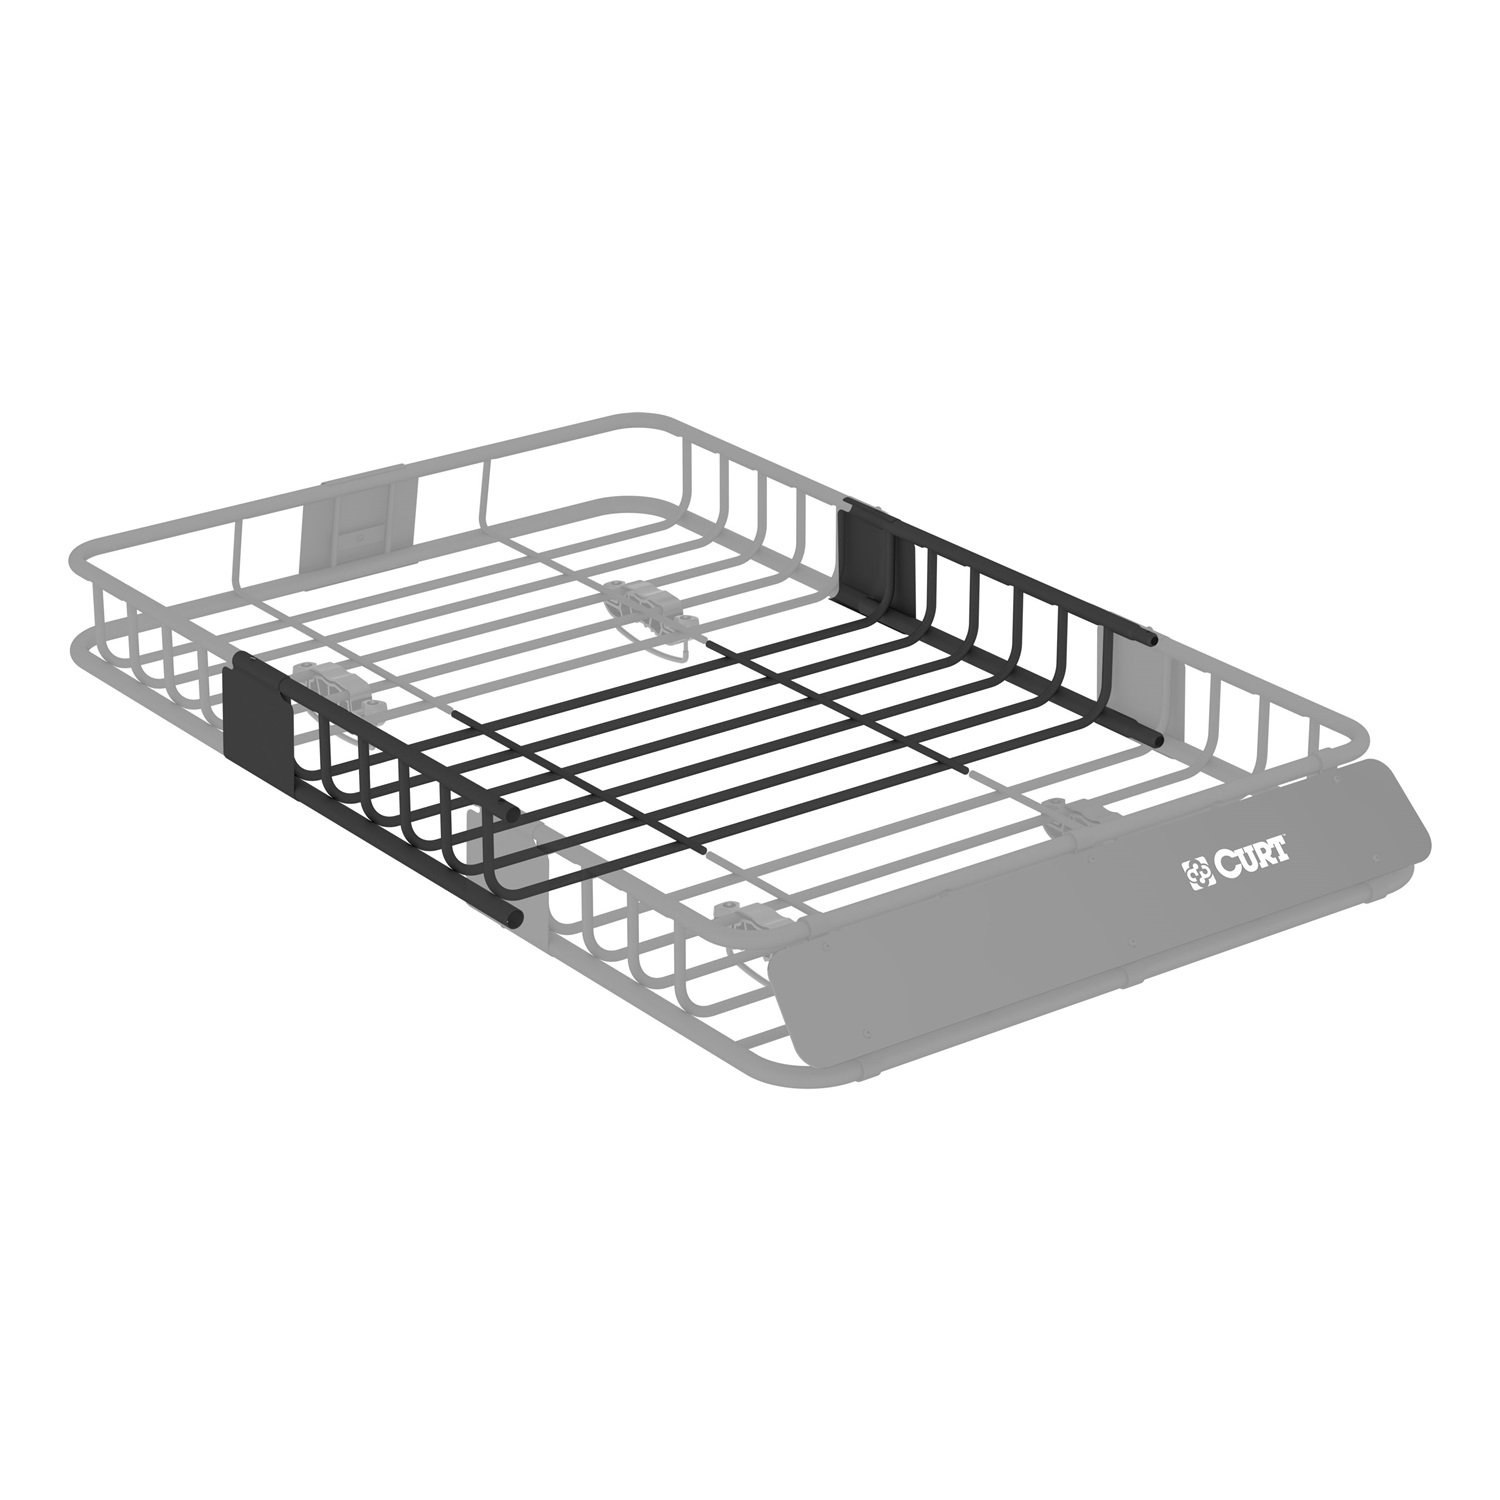 Curt 18117 Roof Mounted Cargo Rack Extension Curt Manufacturing